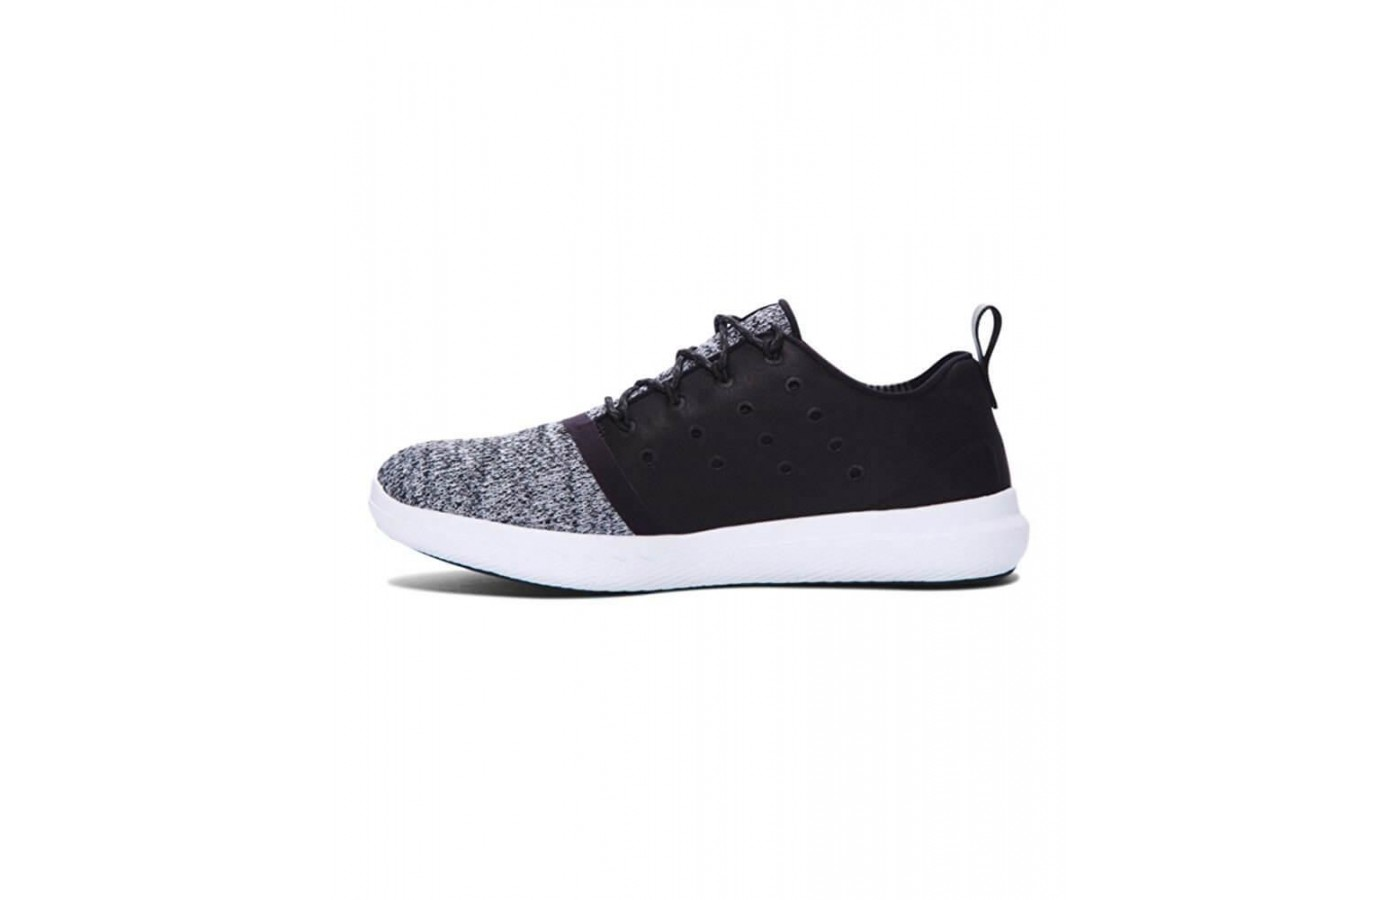 The Under Armour Charged 247 Low effortlessly blends form and function